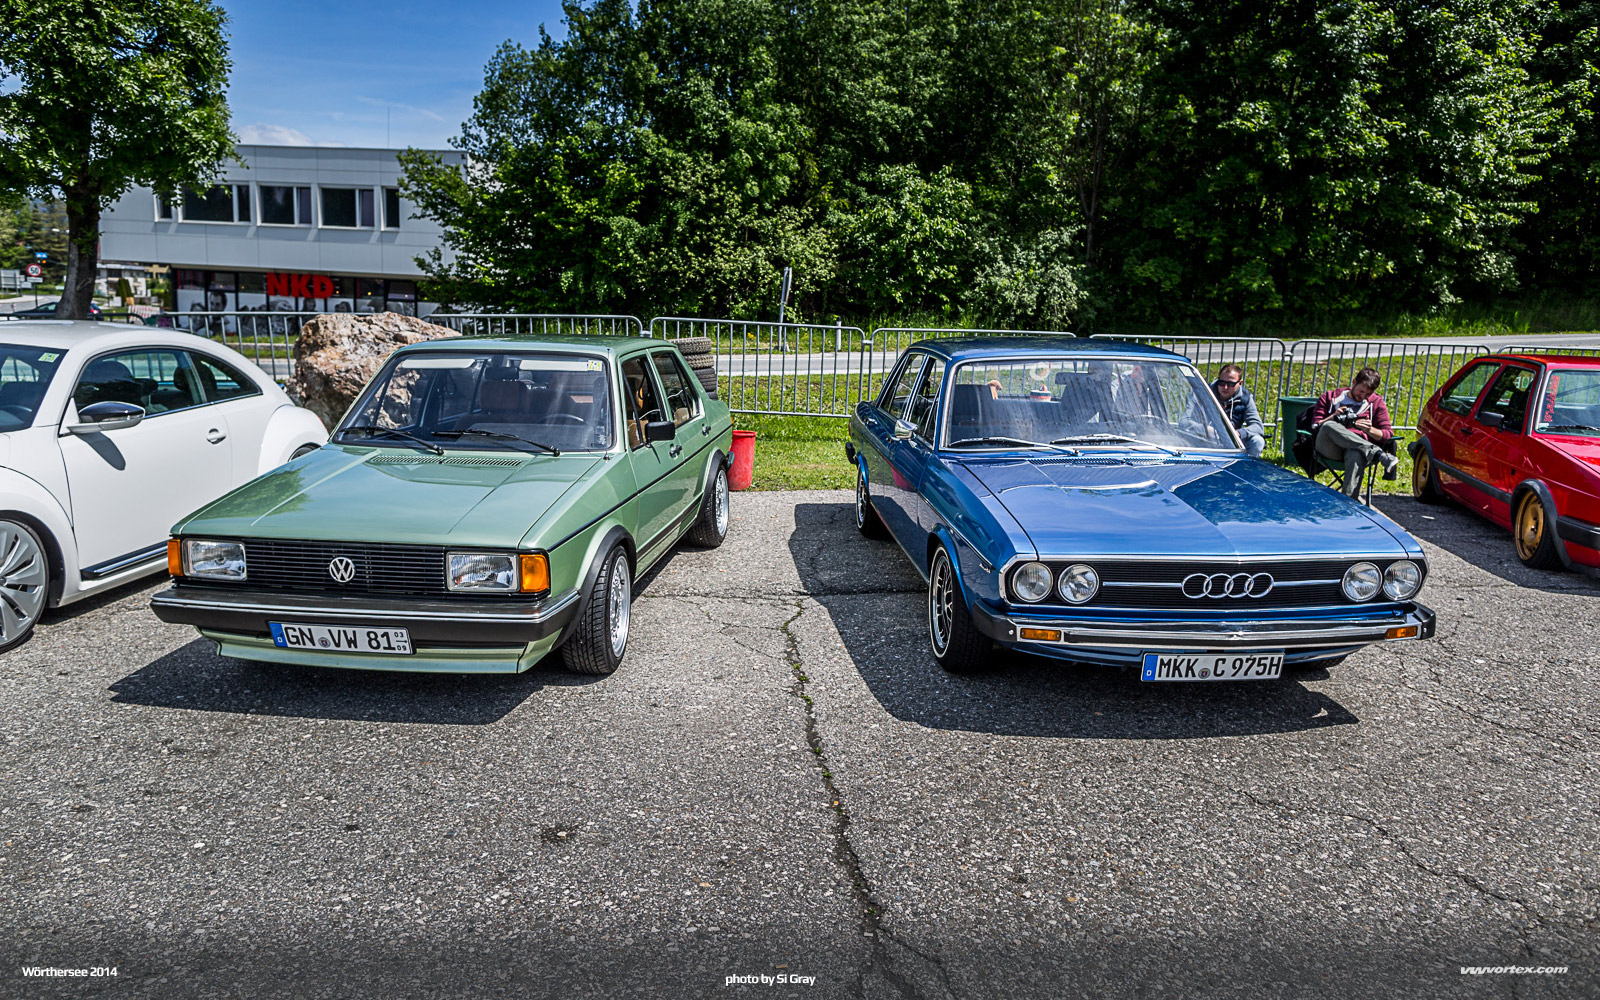 worthersee-2014-dayone-si-gray-378